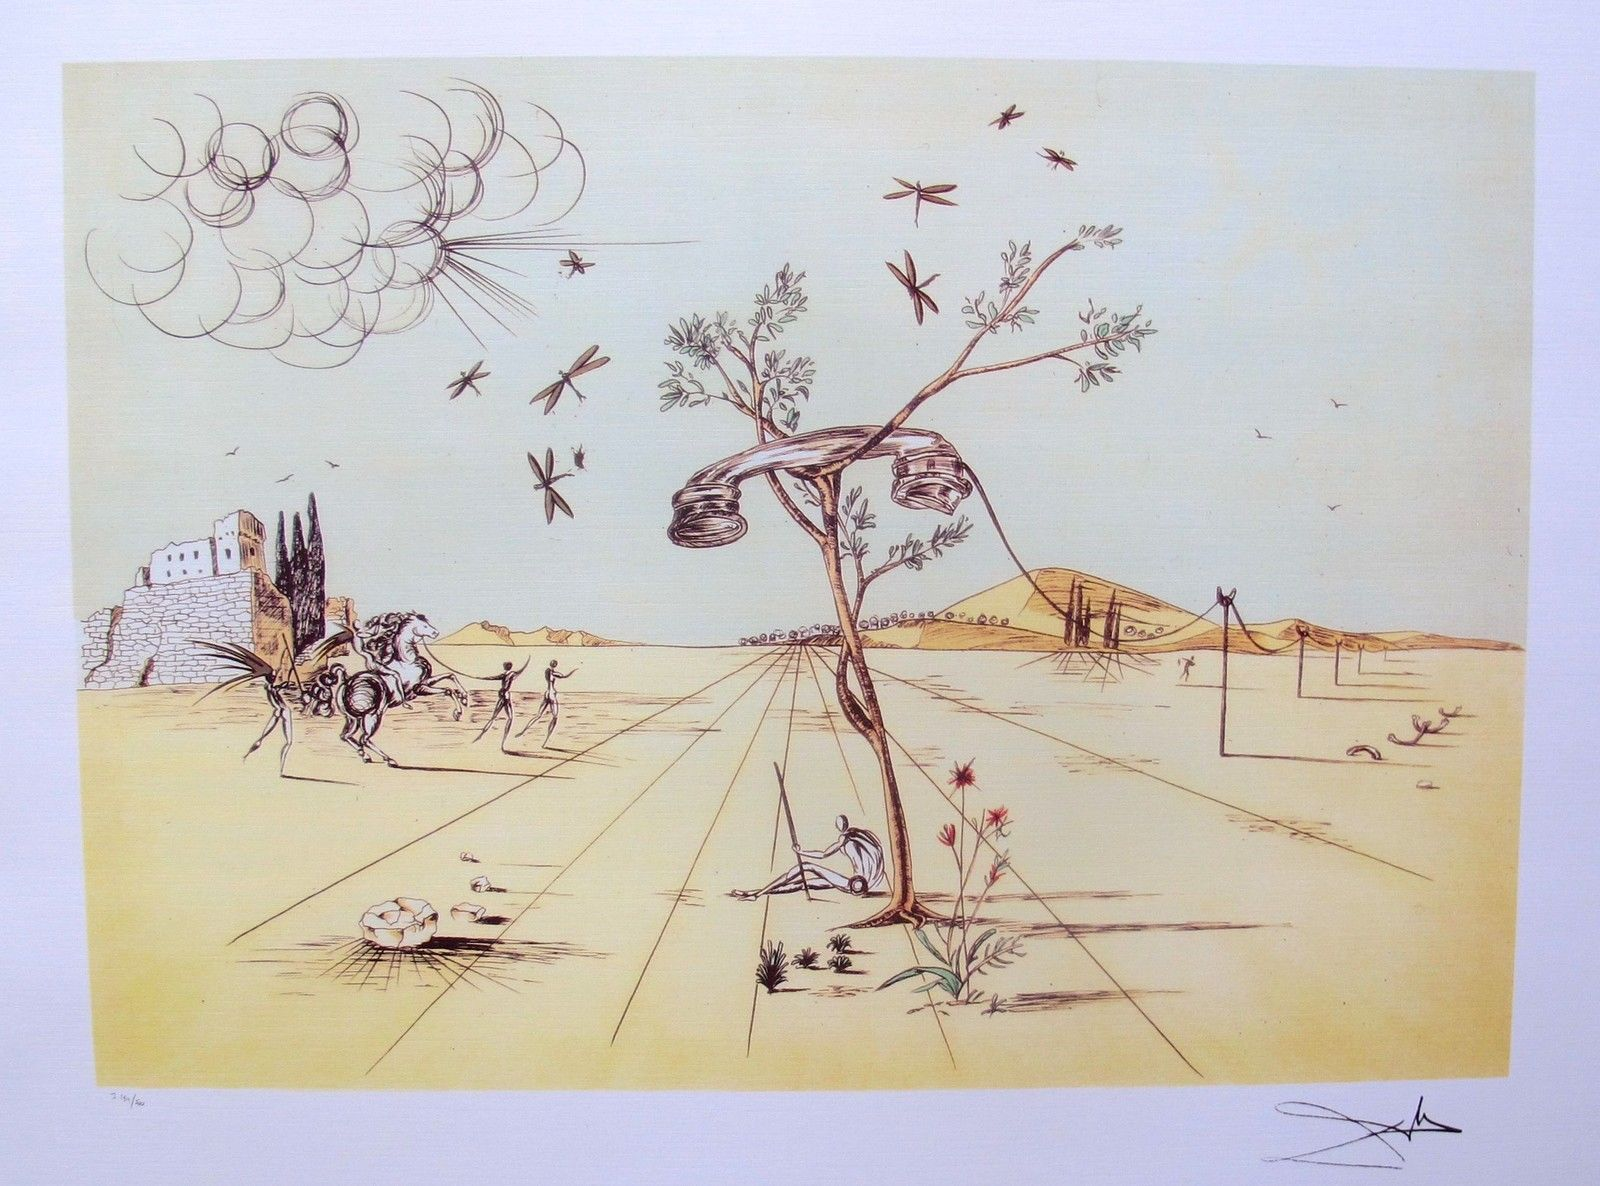 Salvador Dali DISEMBODIED TELEPHONE IN THE DESERT Limited Edition Lithograph